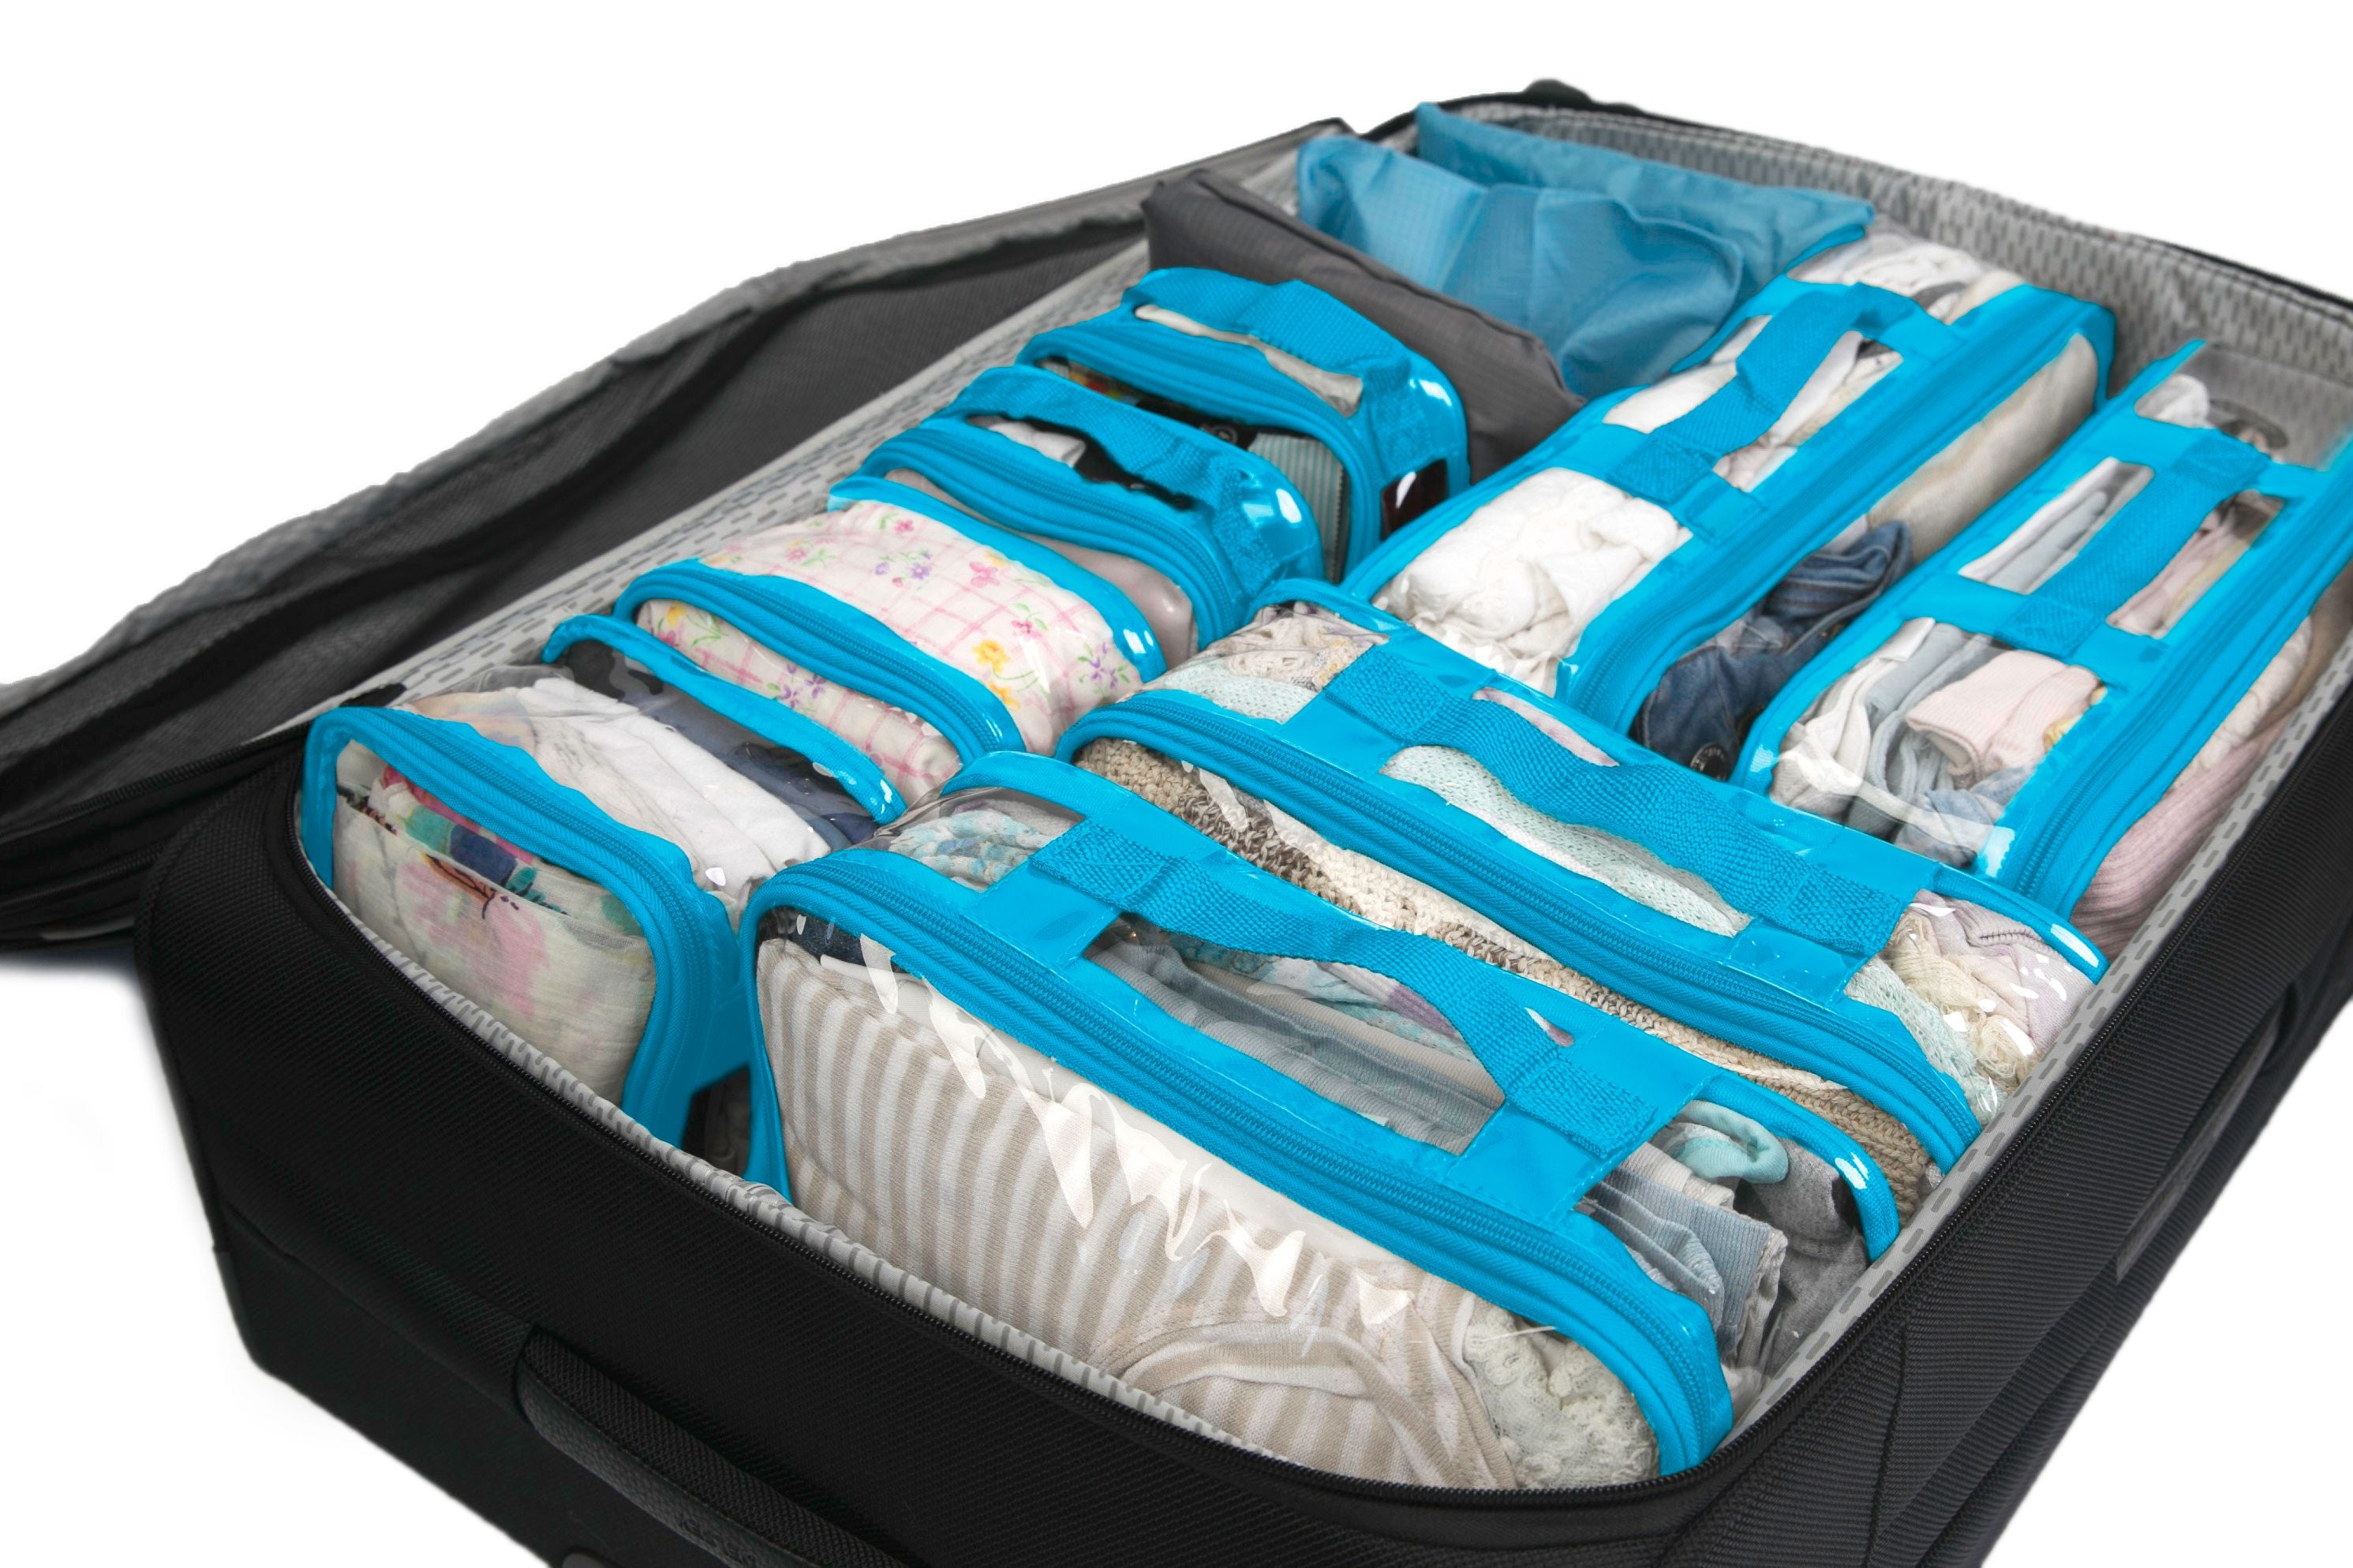 EzPacking Complete bundle in turquoise